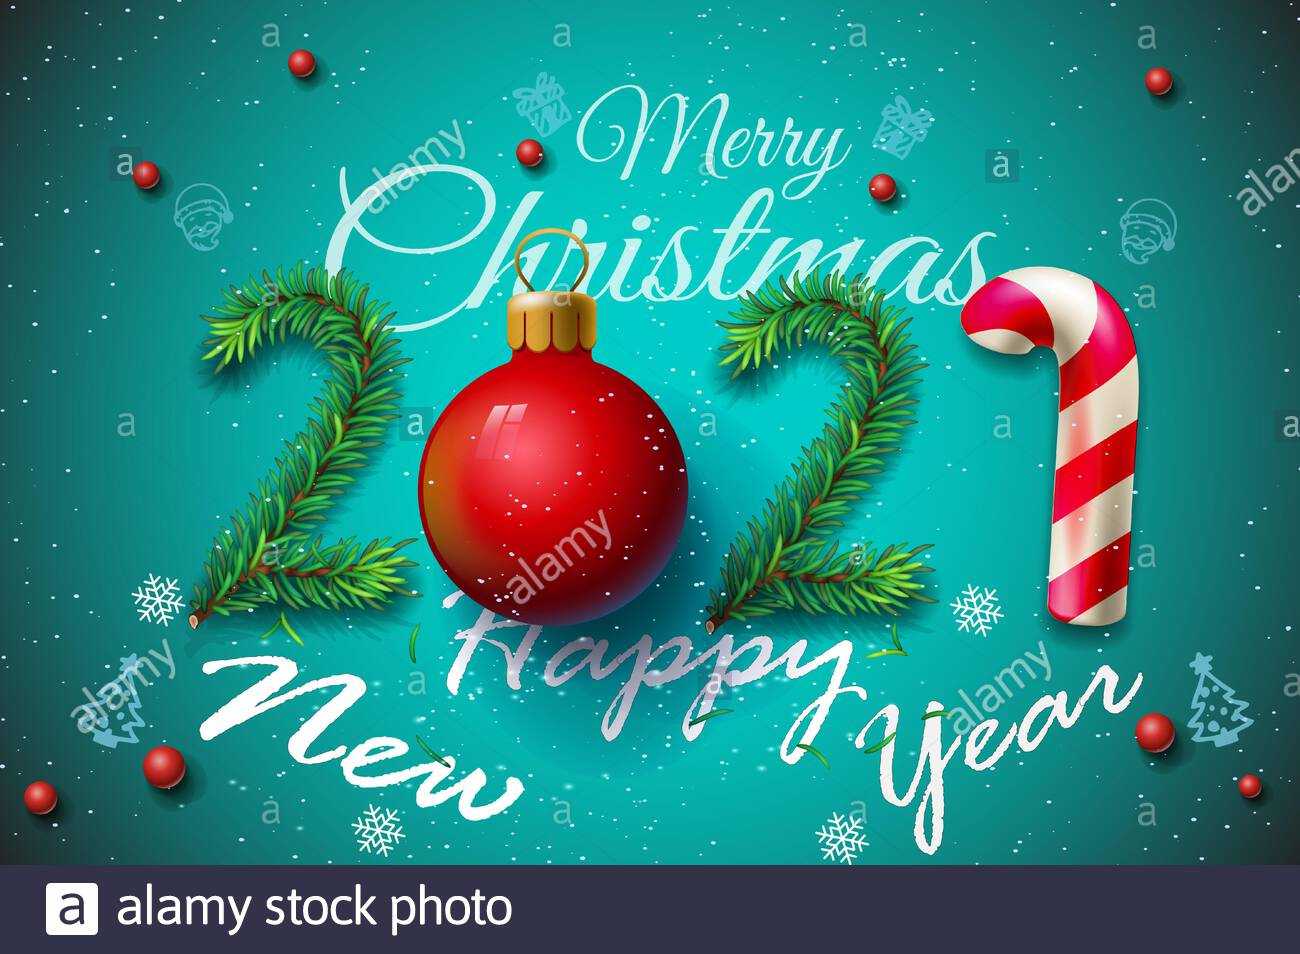 new year 2021 and merry christmas greetings merry christmas and happy new year 2021 greeting card vector illustration new year 2021 greeting card stock vector image art alamy https www alamy com new year 2021 and merry christmas greetings merry christmas and happy new year 2021 greeting card vector illustration new year 2021 greeting card image361063948 html